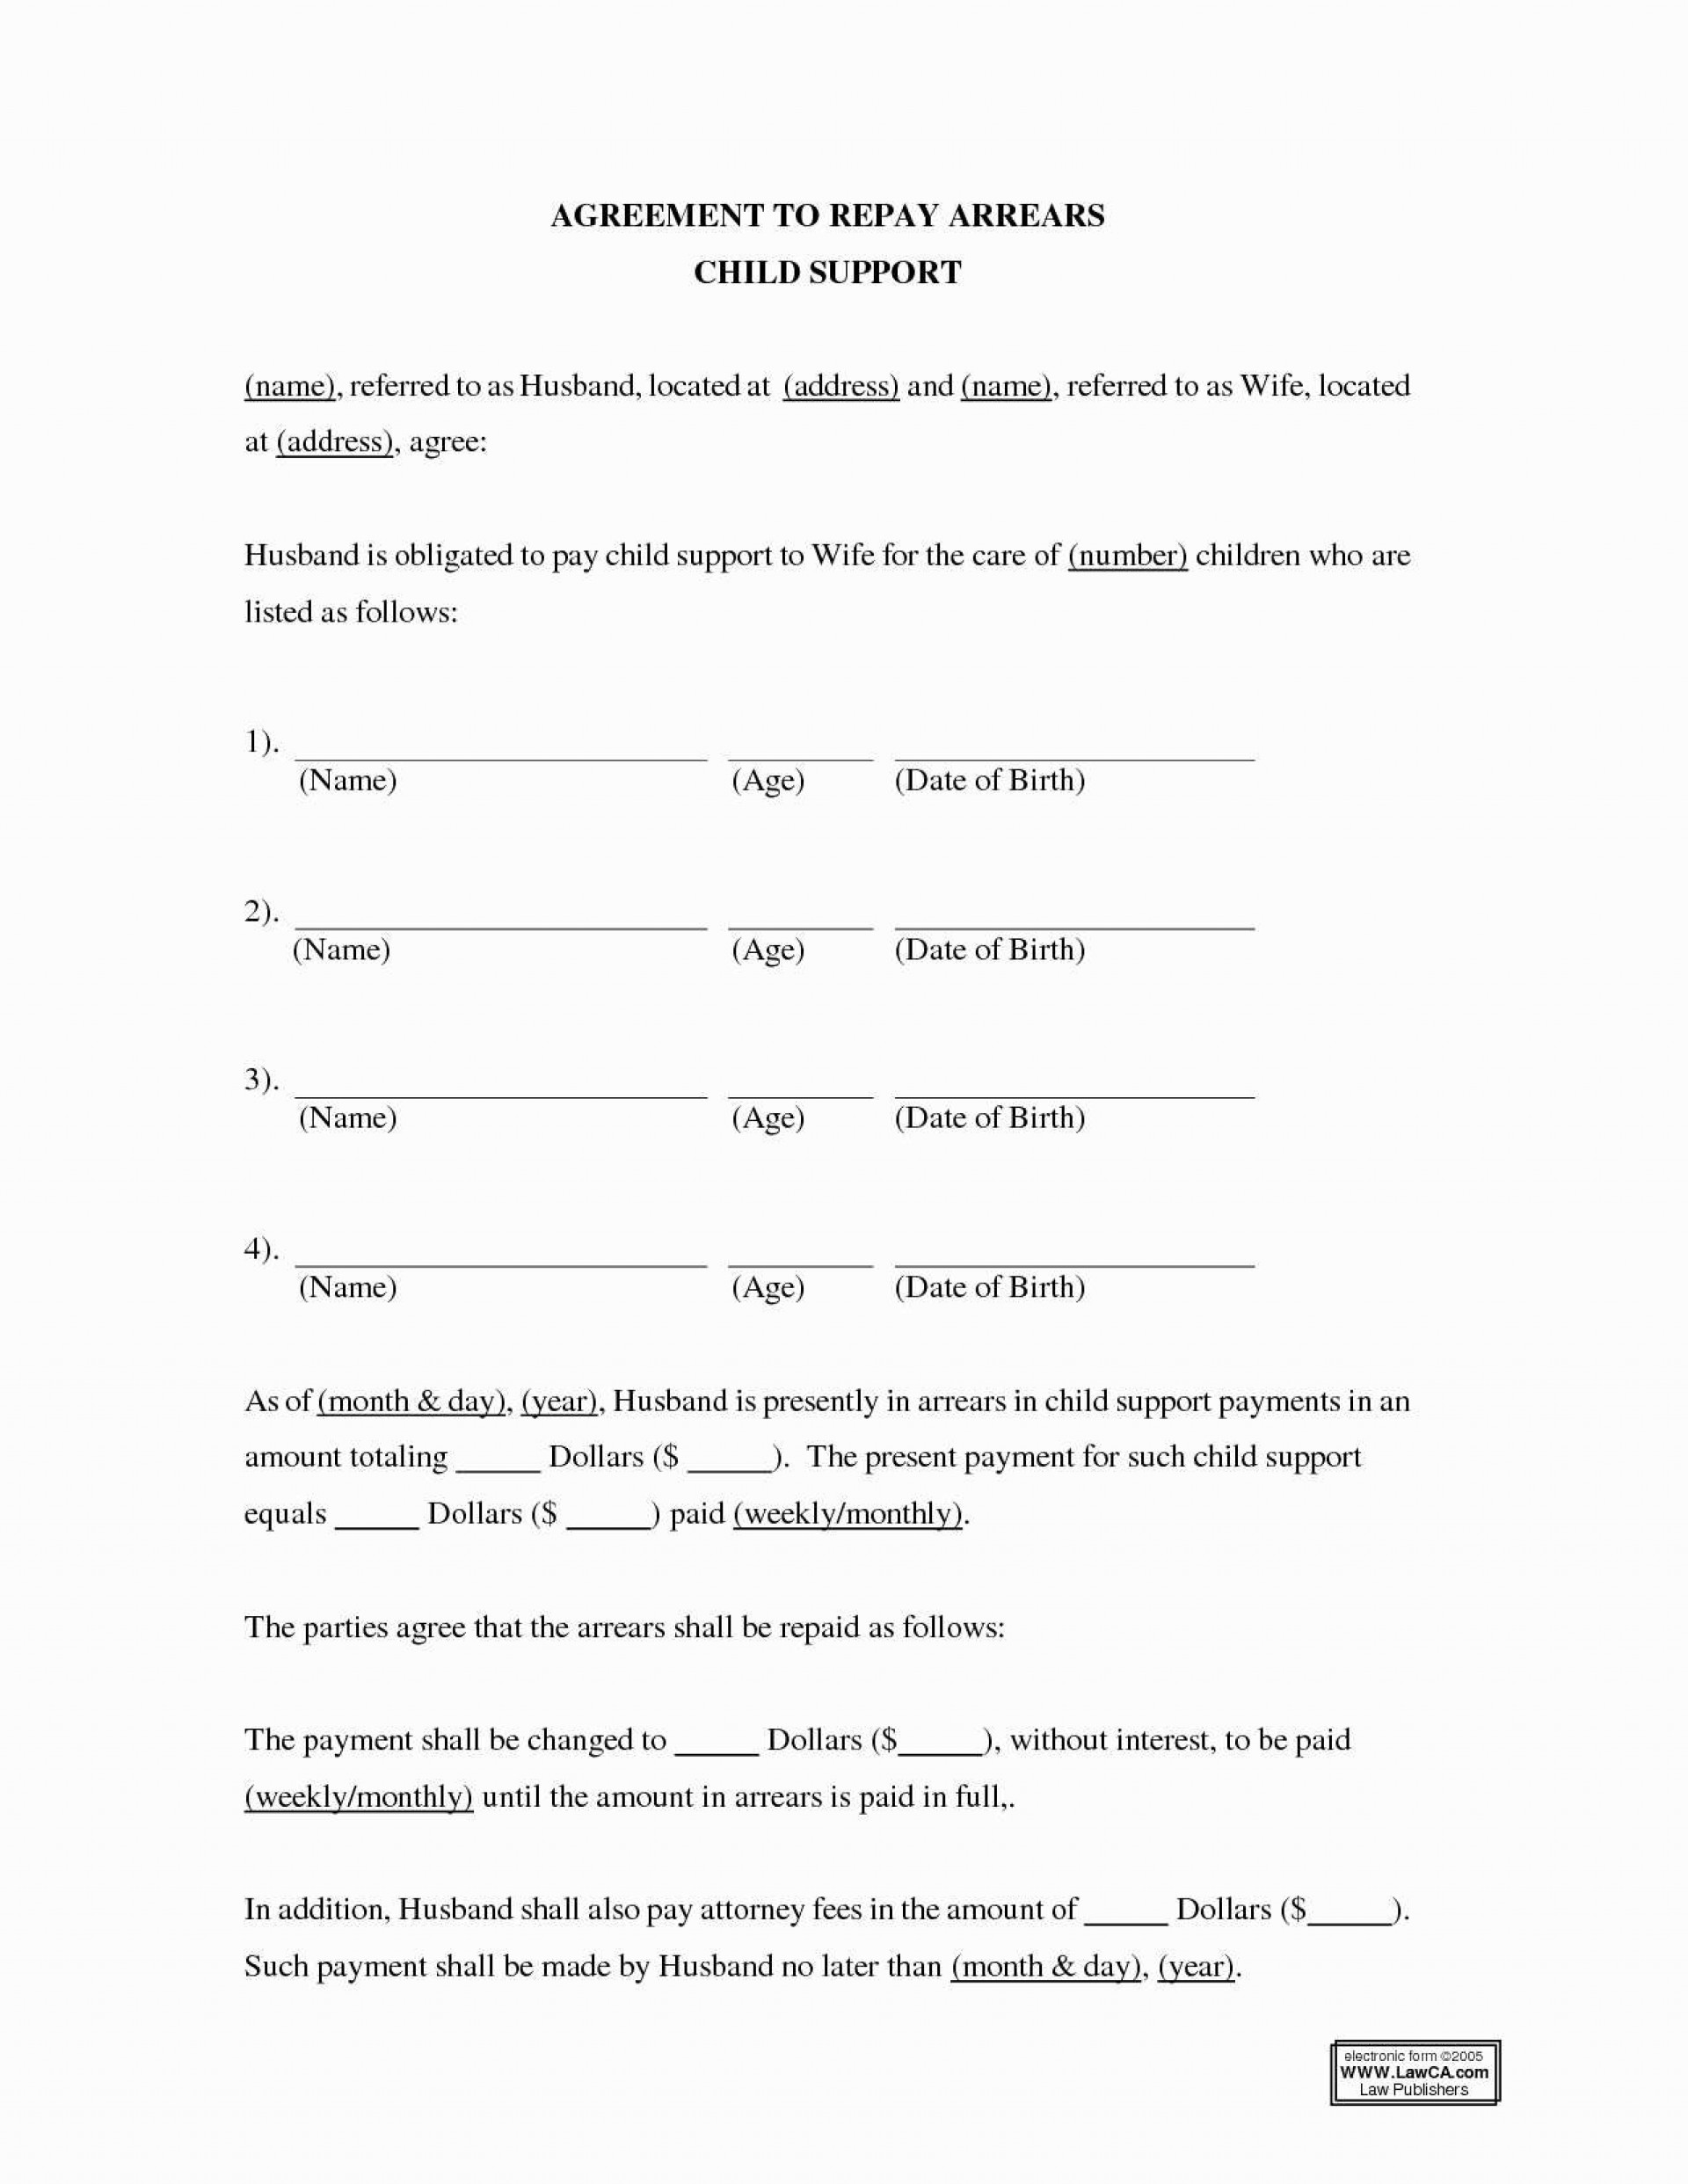 Child Support And Visitation Agreement Template